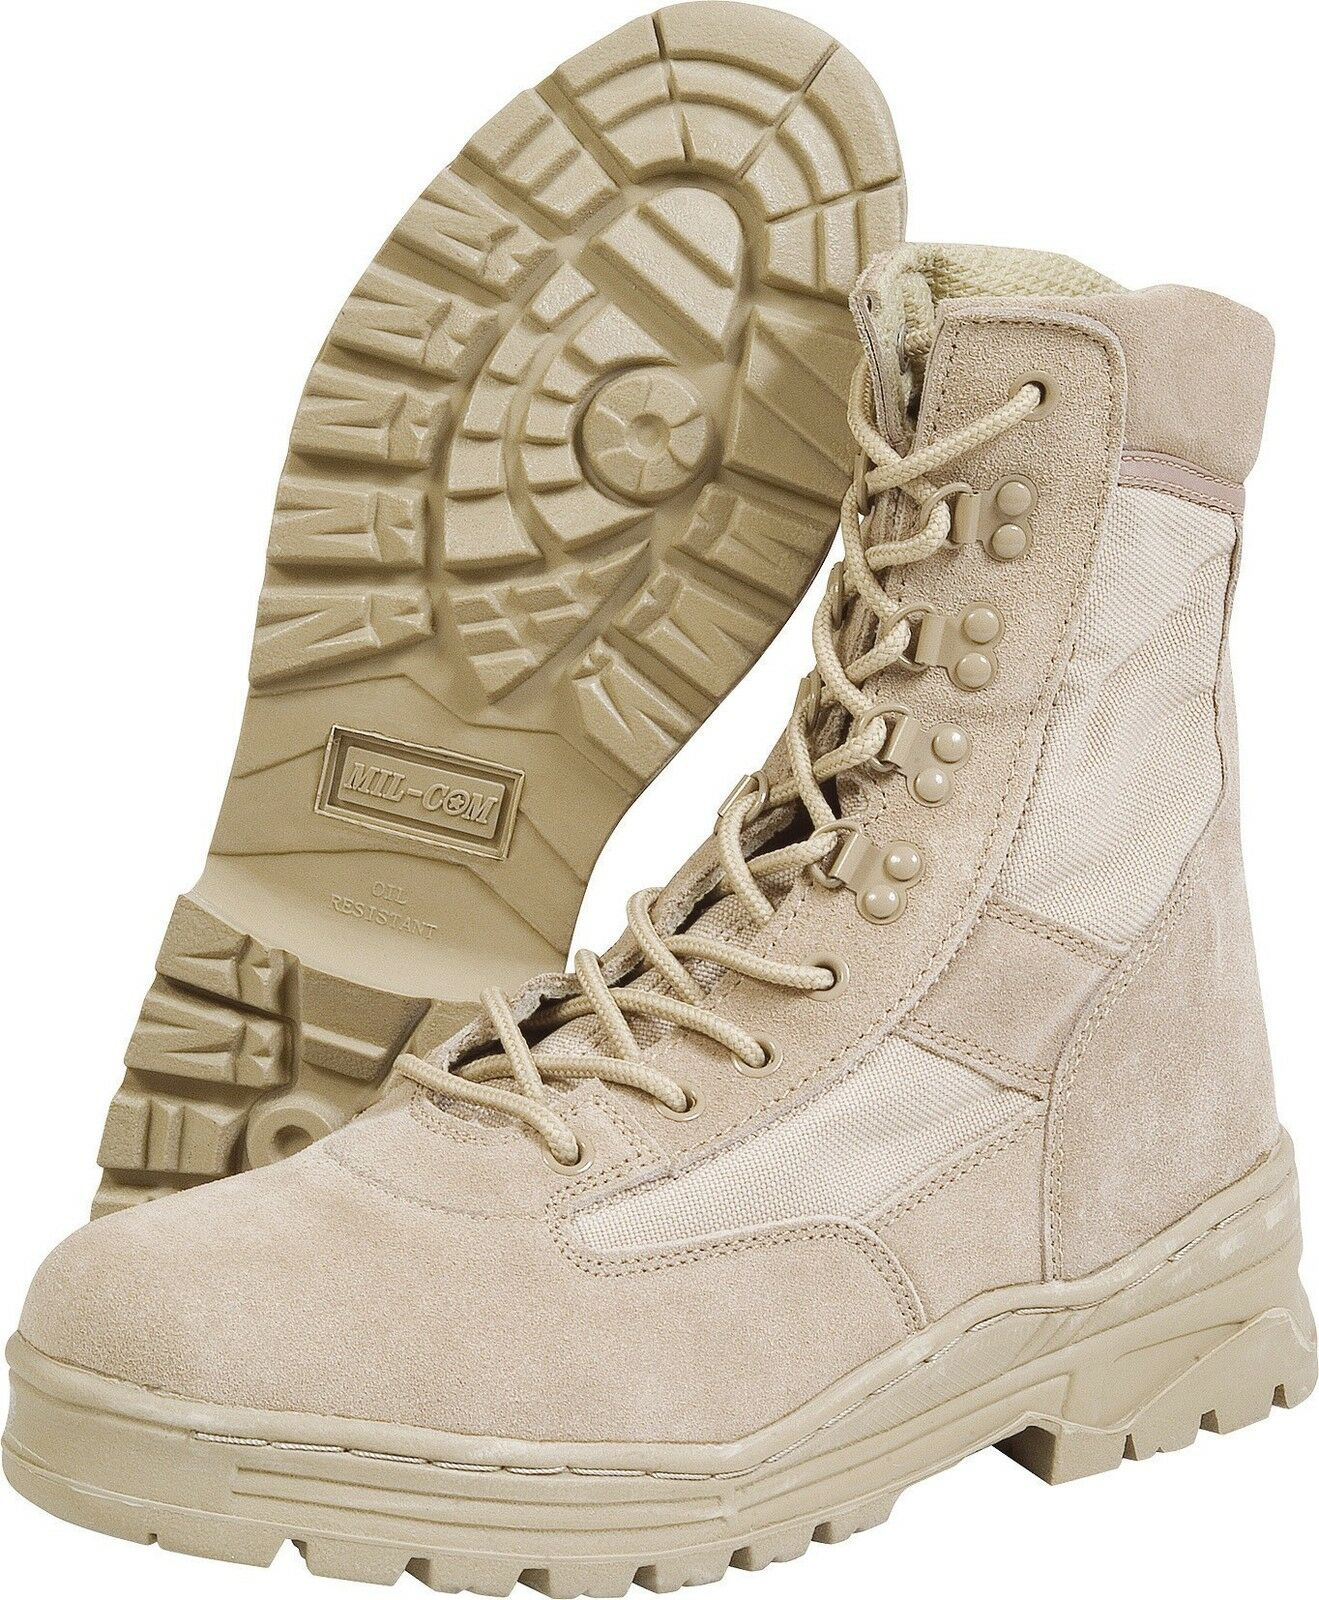 Mil-Com Desert Patrol Boots, Sand,  Size 4 to 13